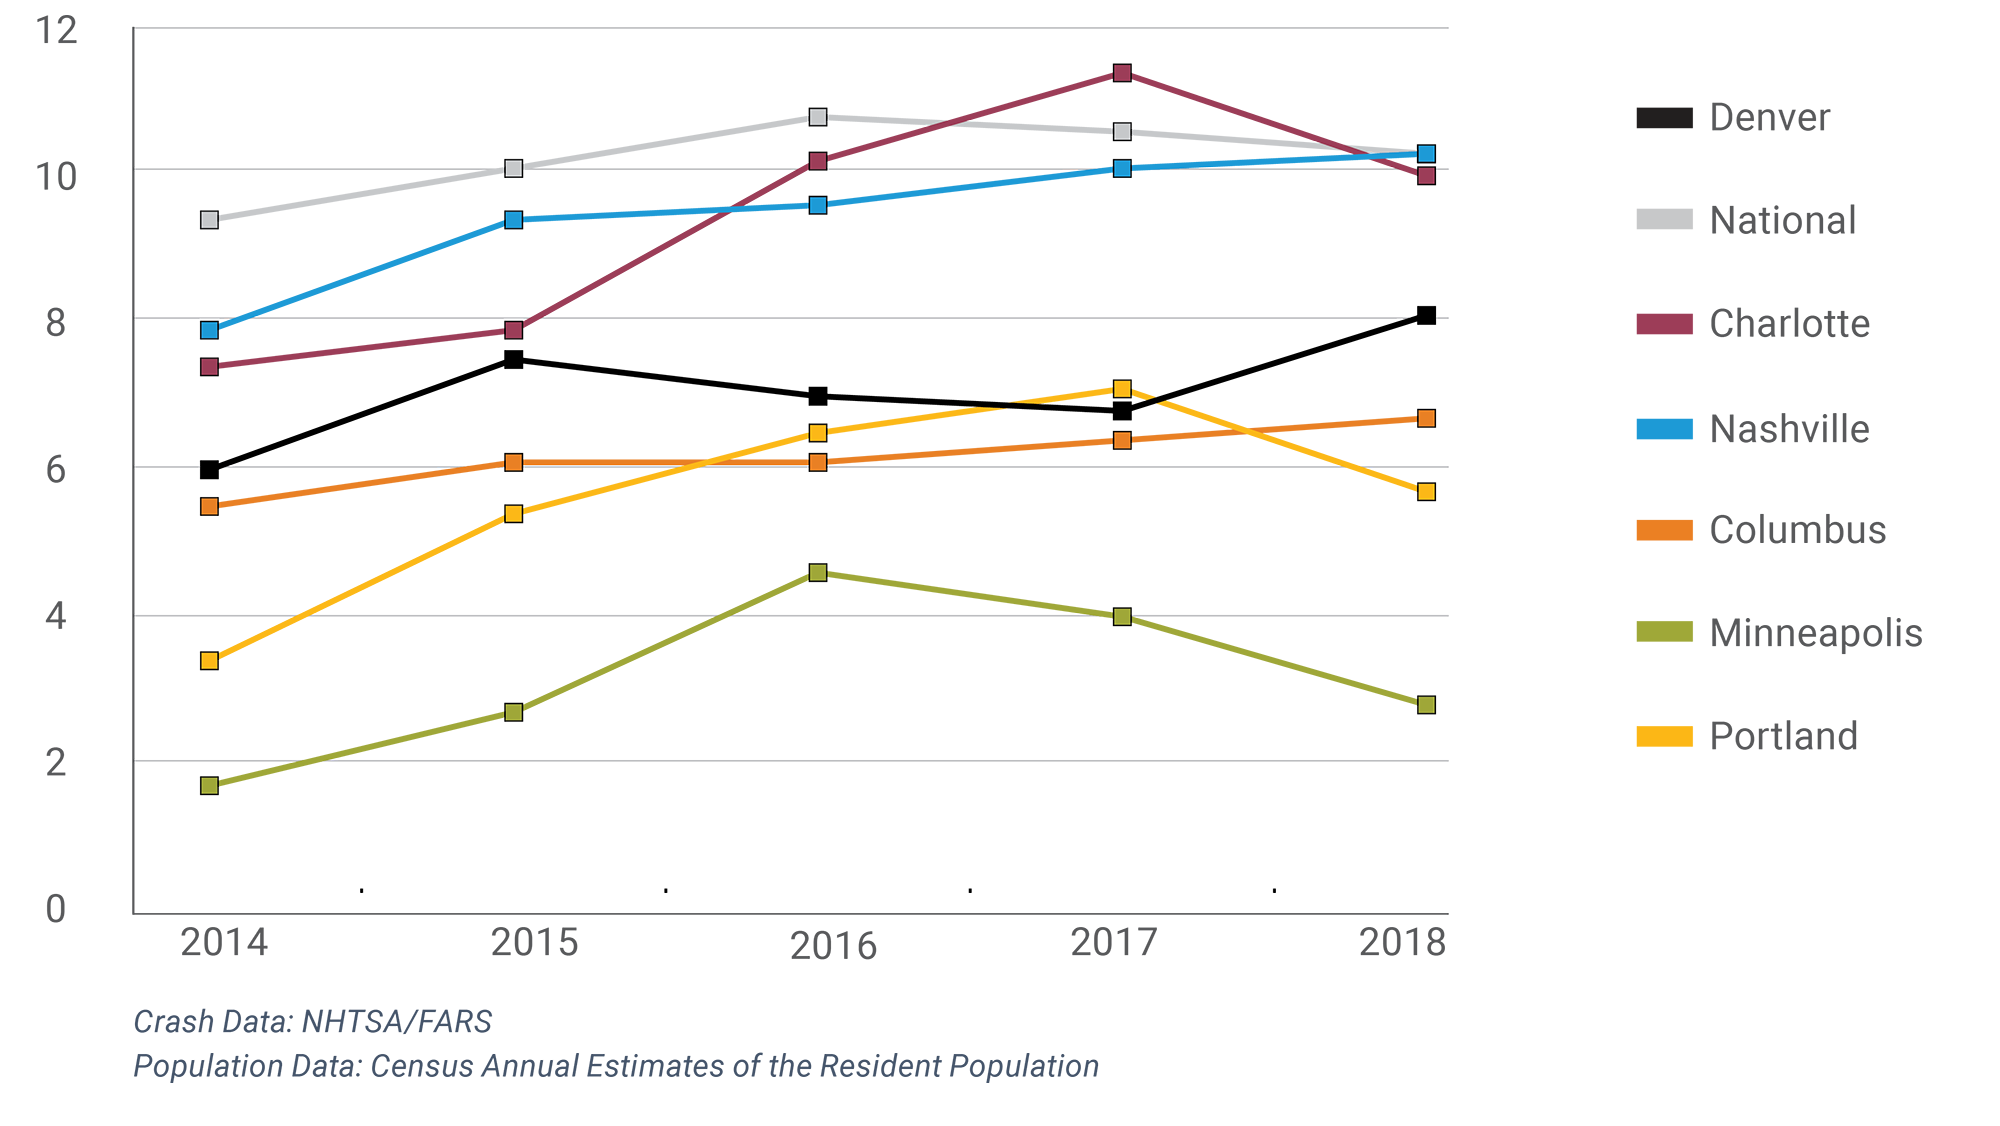 fatality trends for Denver, Charlotte, Nashville, Columbus, Minneapolis and Portland, with Denver the third highest in 2019